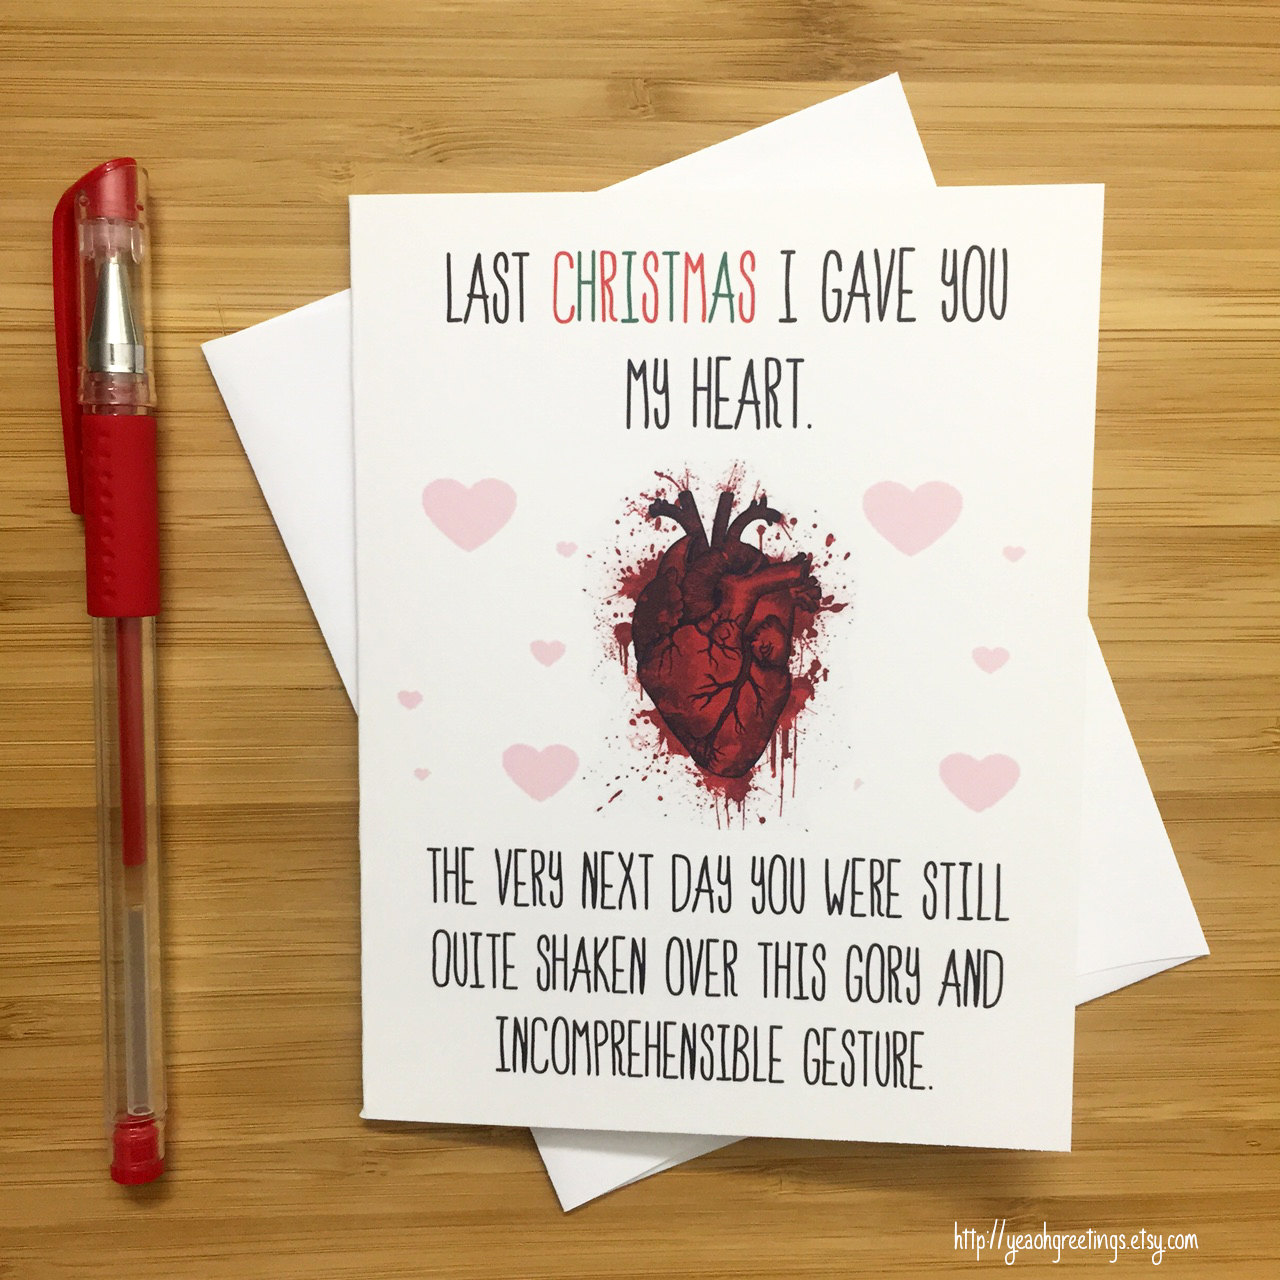 Funniest christmas cards a new spin on the last christmas i gave funniest christmas cards a new spin on the last christmas i gave you my heart song m4hsunfo Gallery